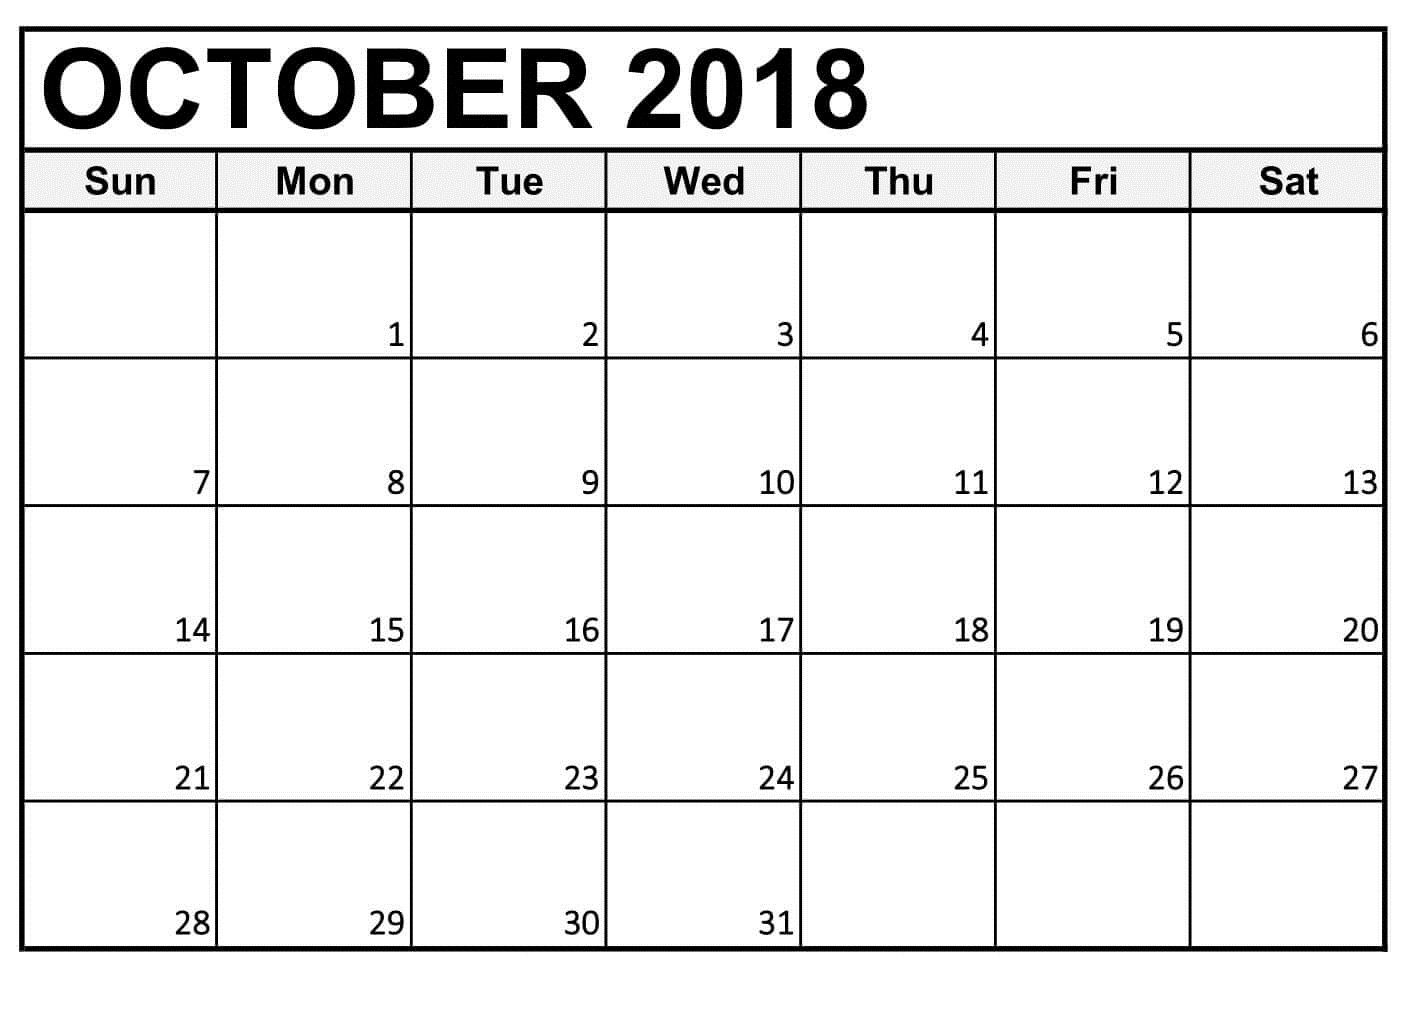 Free Printable Calendar October 2018 Large Numbers | October 2018